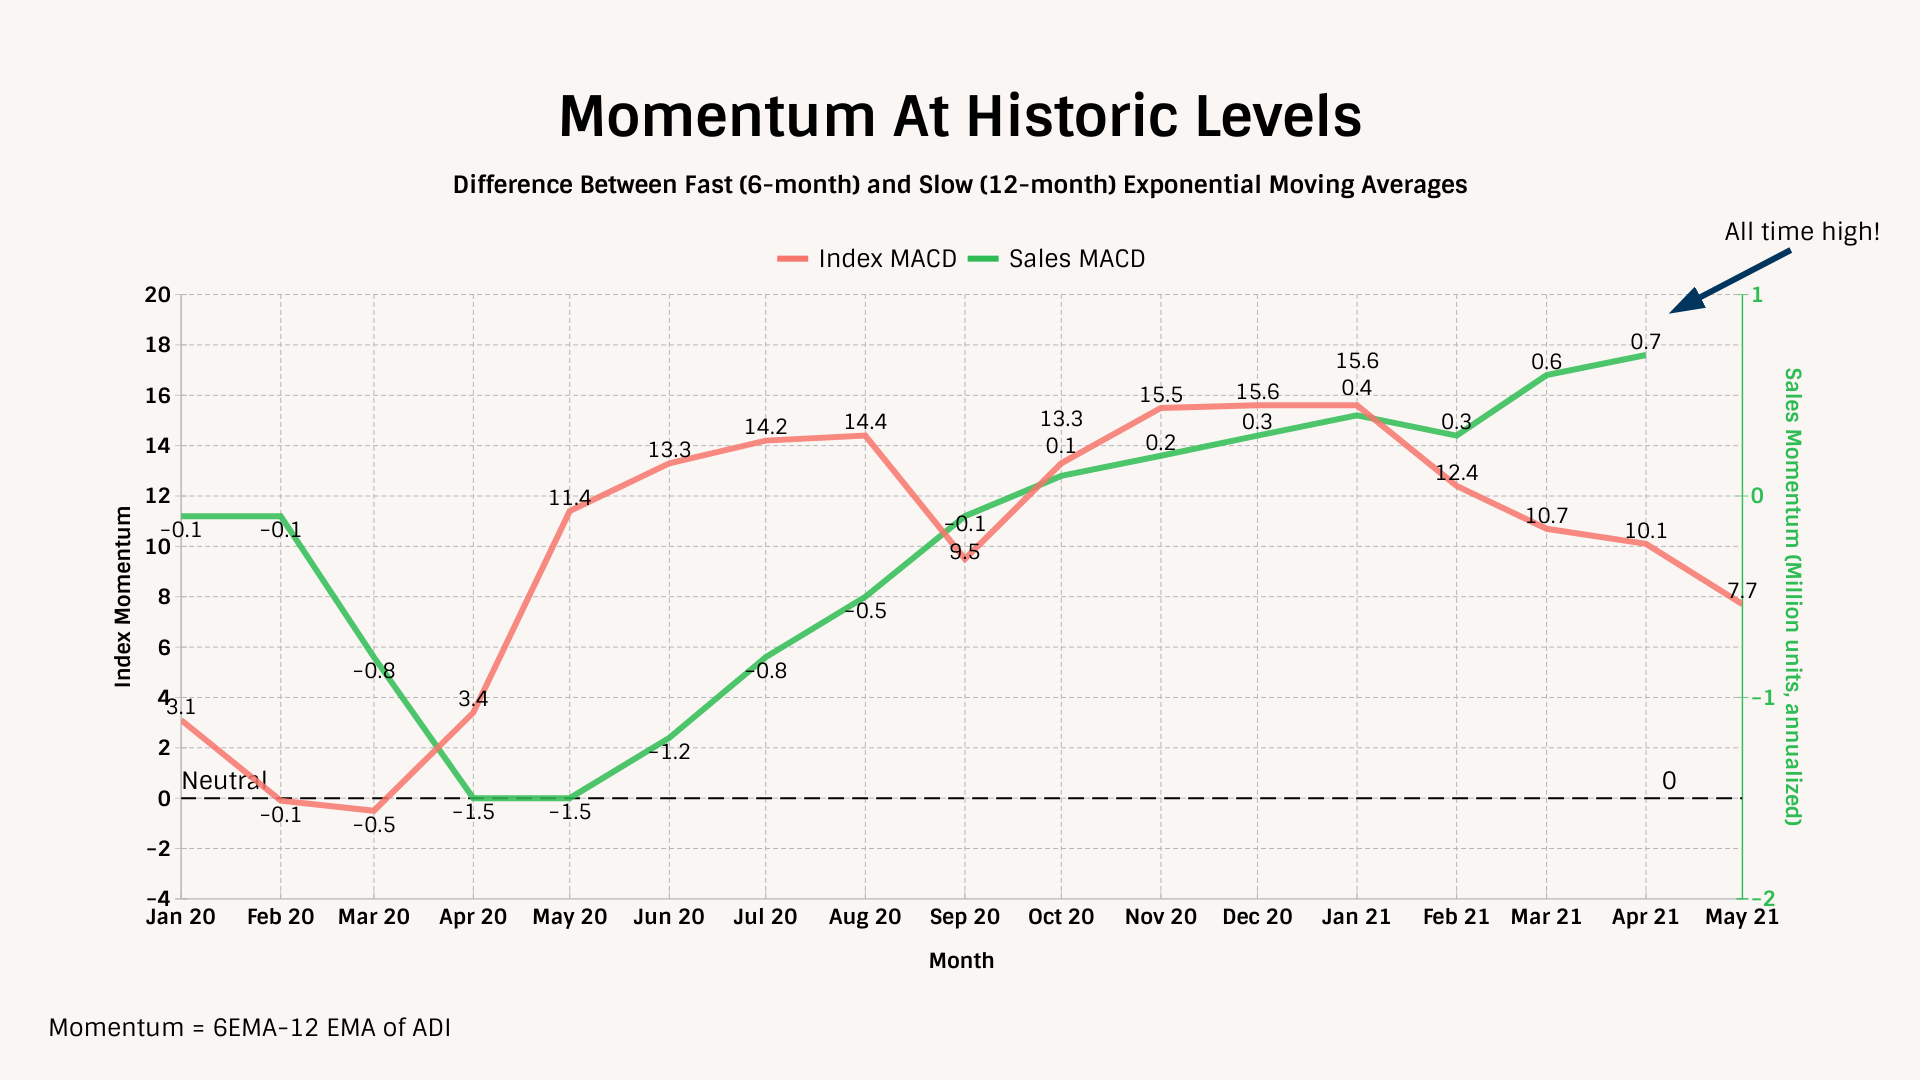 Exponential Moving Average Of MACD Index And MACD Sales Comparison Chart